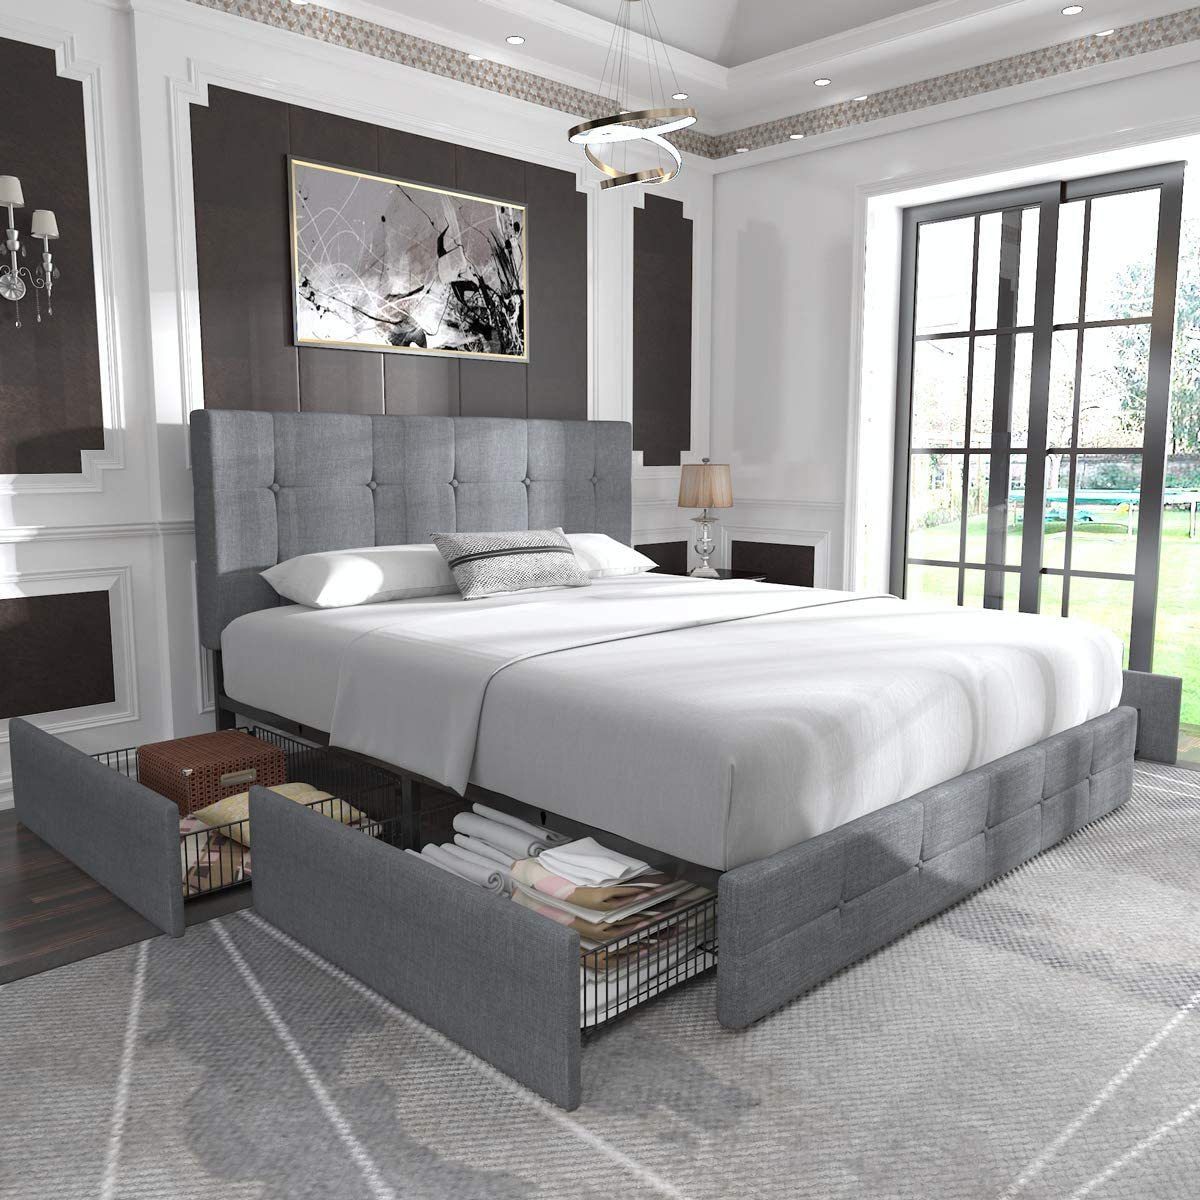 Allewie Queen Platform Bed Frame with Four Drawers